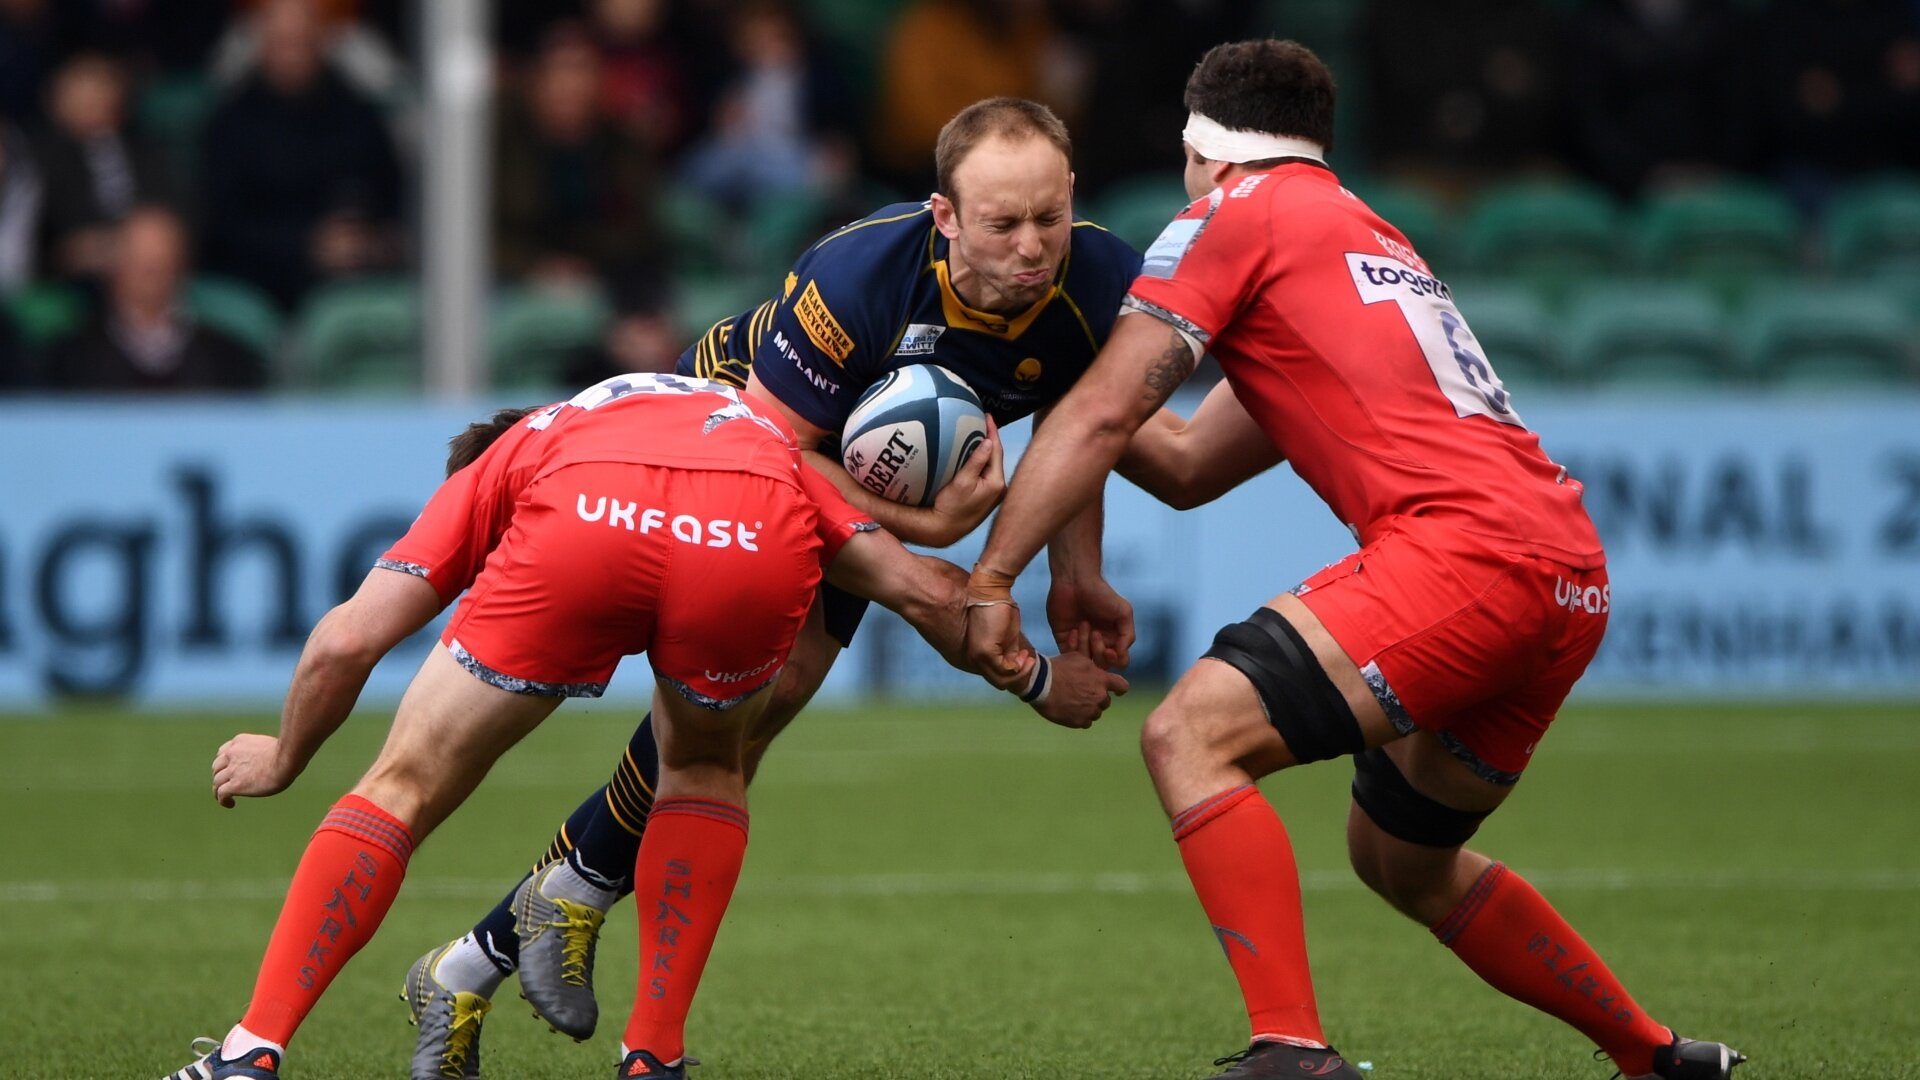 Chris Pennell's bold prediction despite Worcester winning only 58 of 220 games in his 10 Premiership campaigns